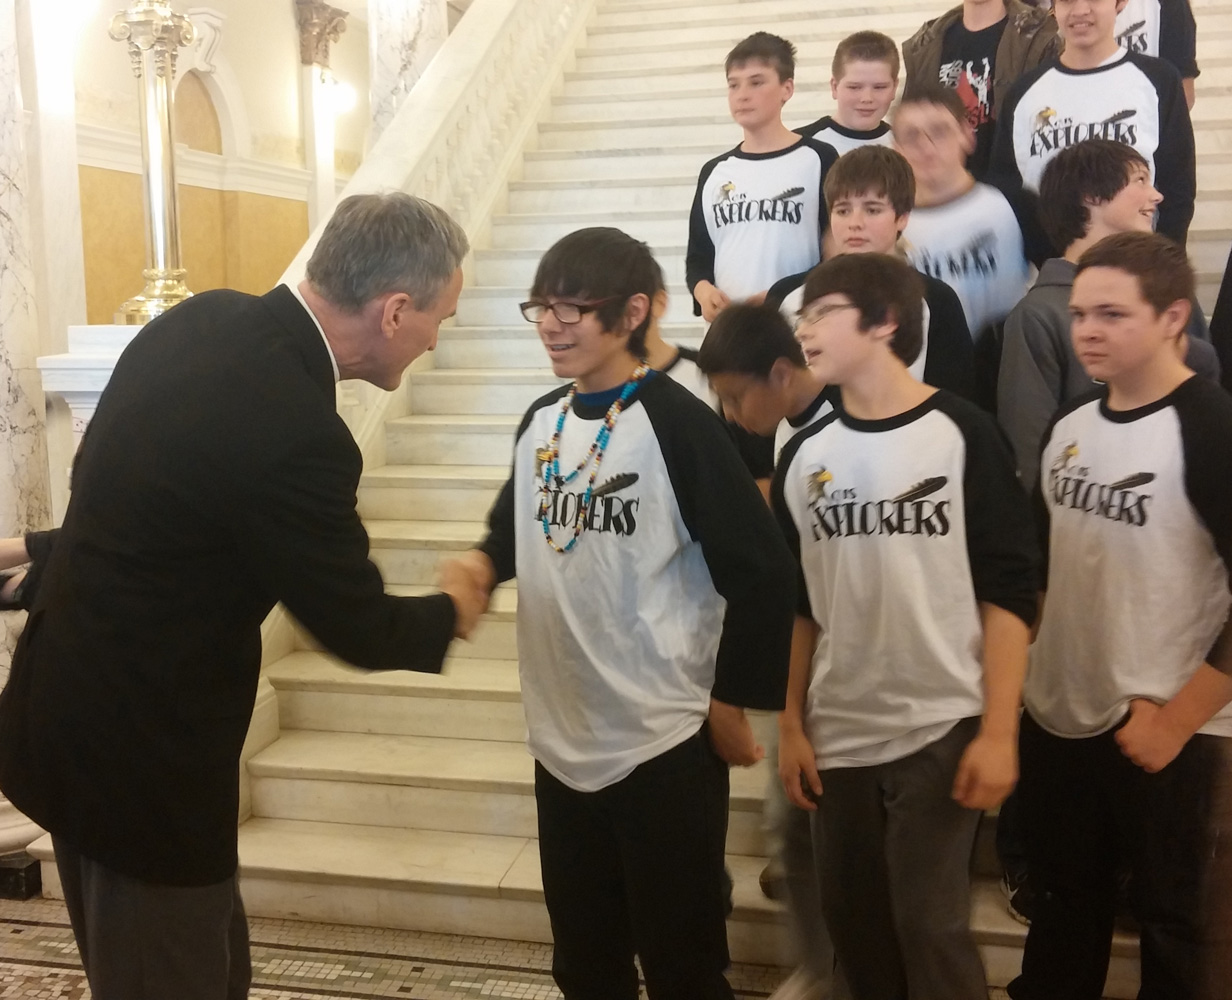 The Explorers met the Governor on their recent trip to Pierre.